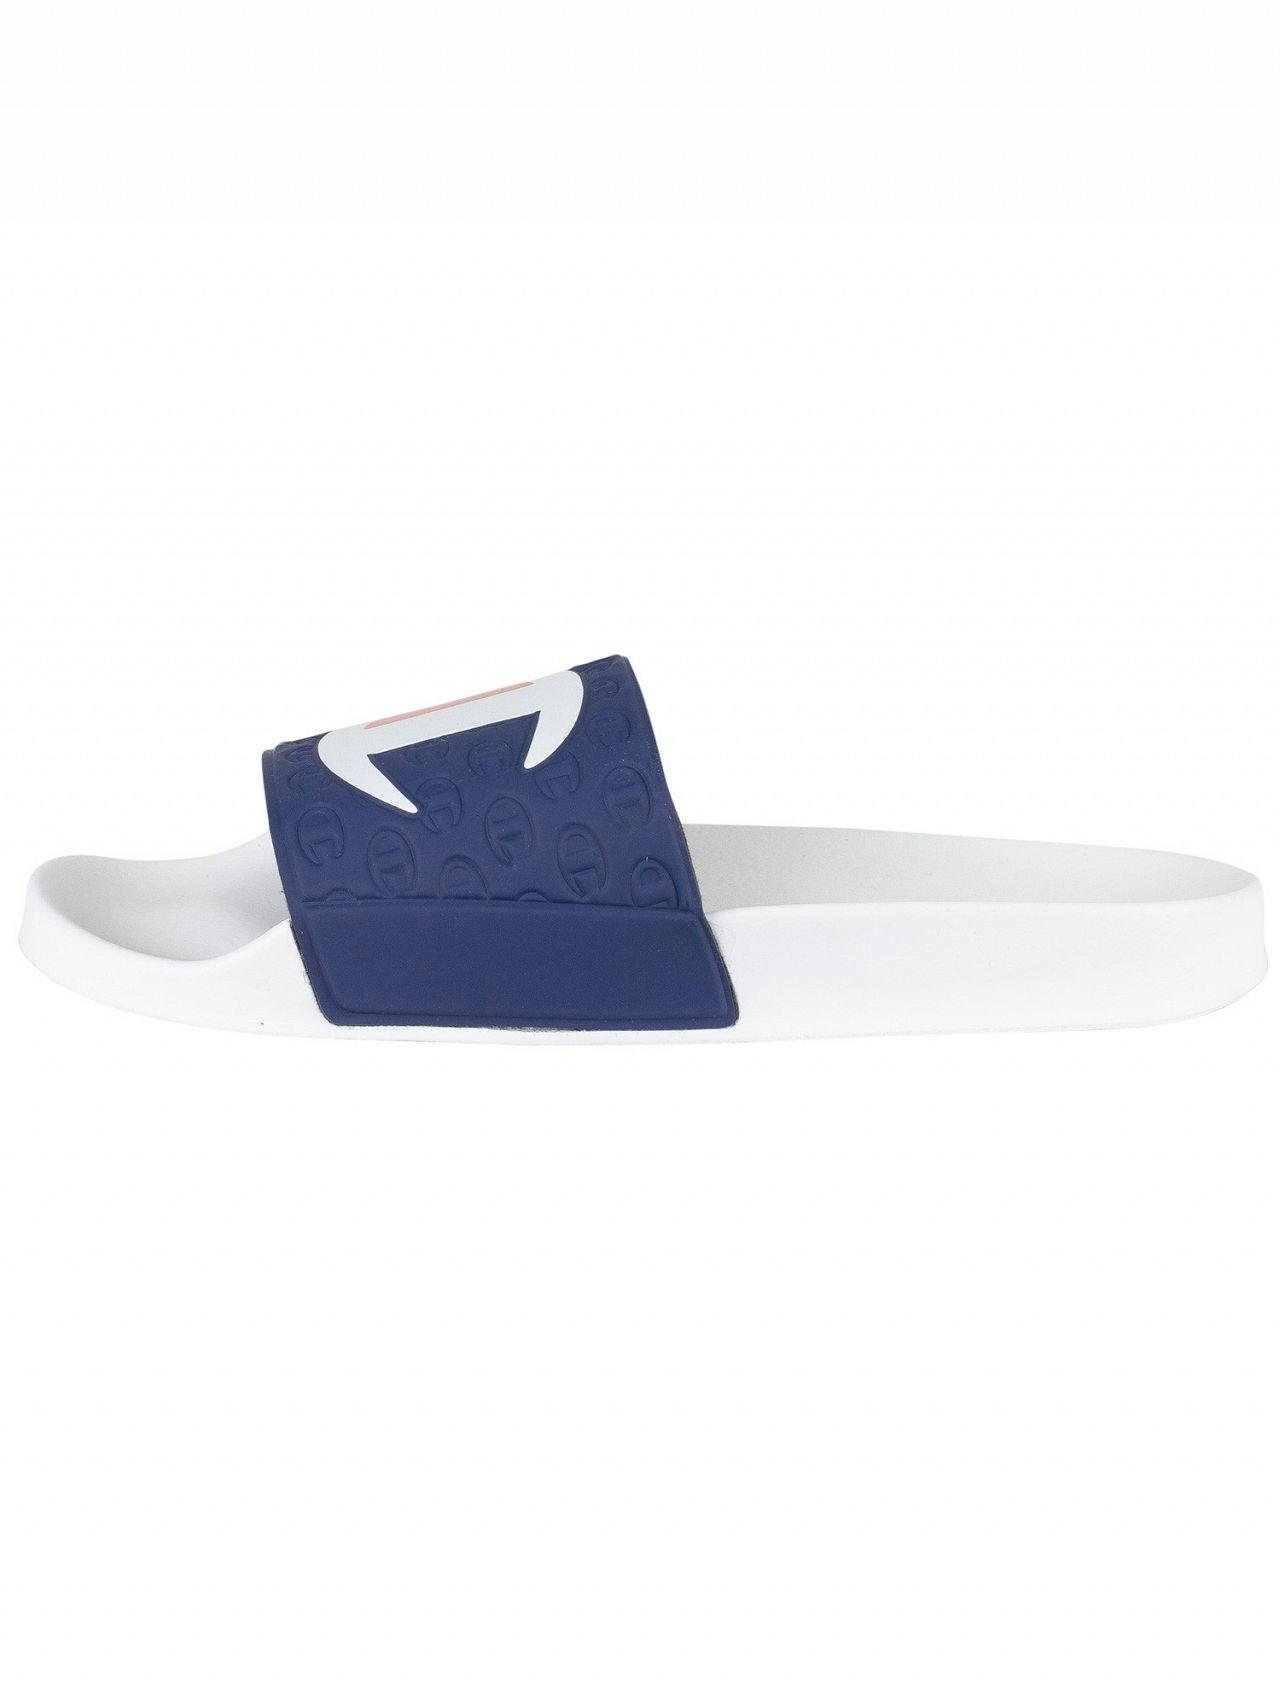 a4f26d3fef9d Lyst - Champion White navy Logo Sliders in White for Men